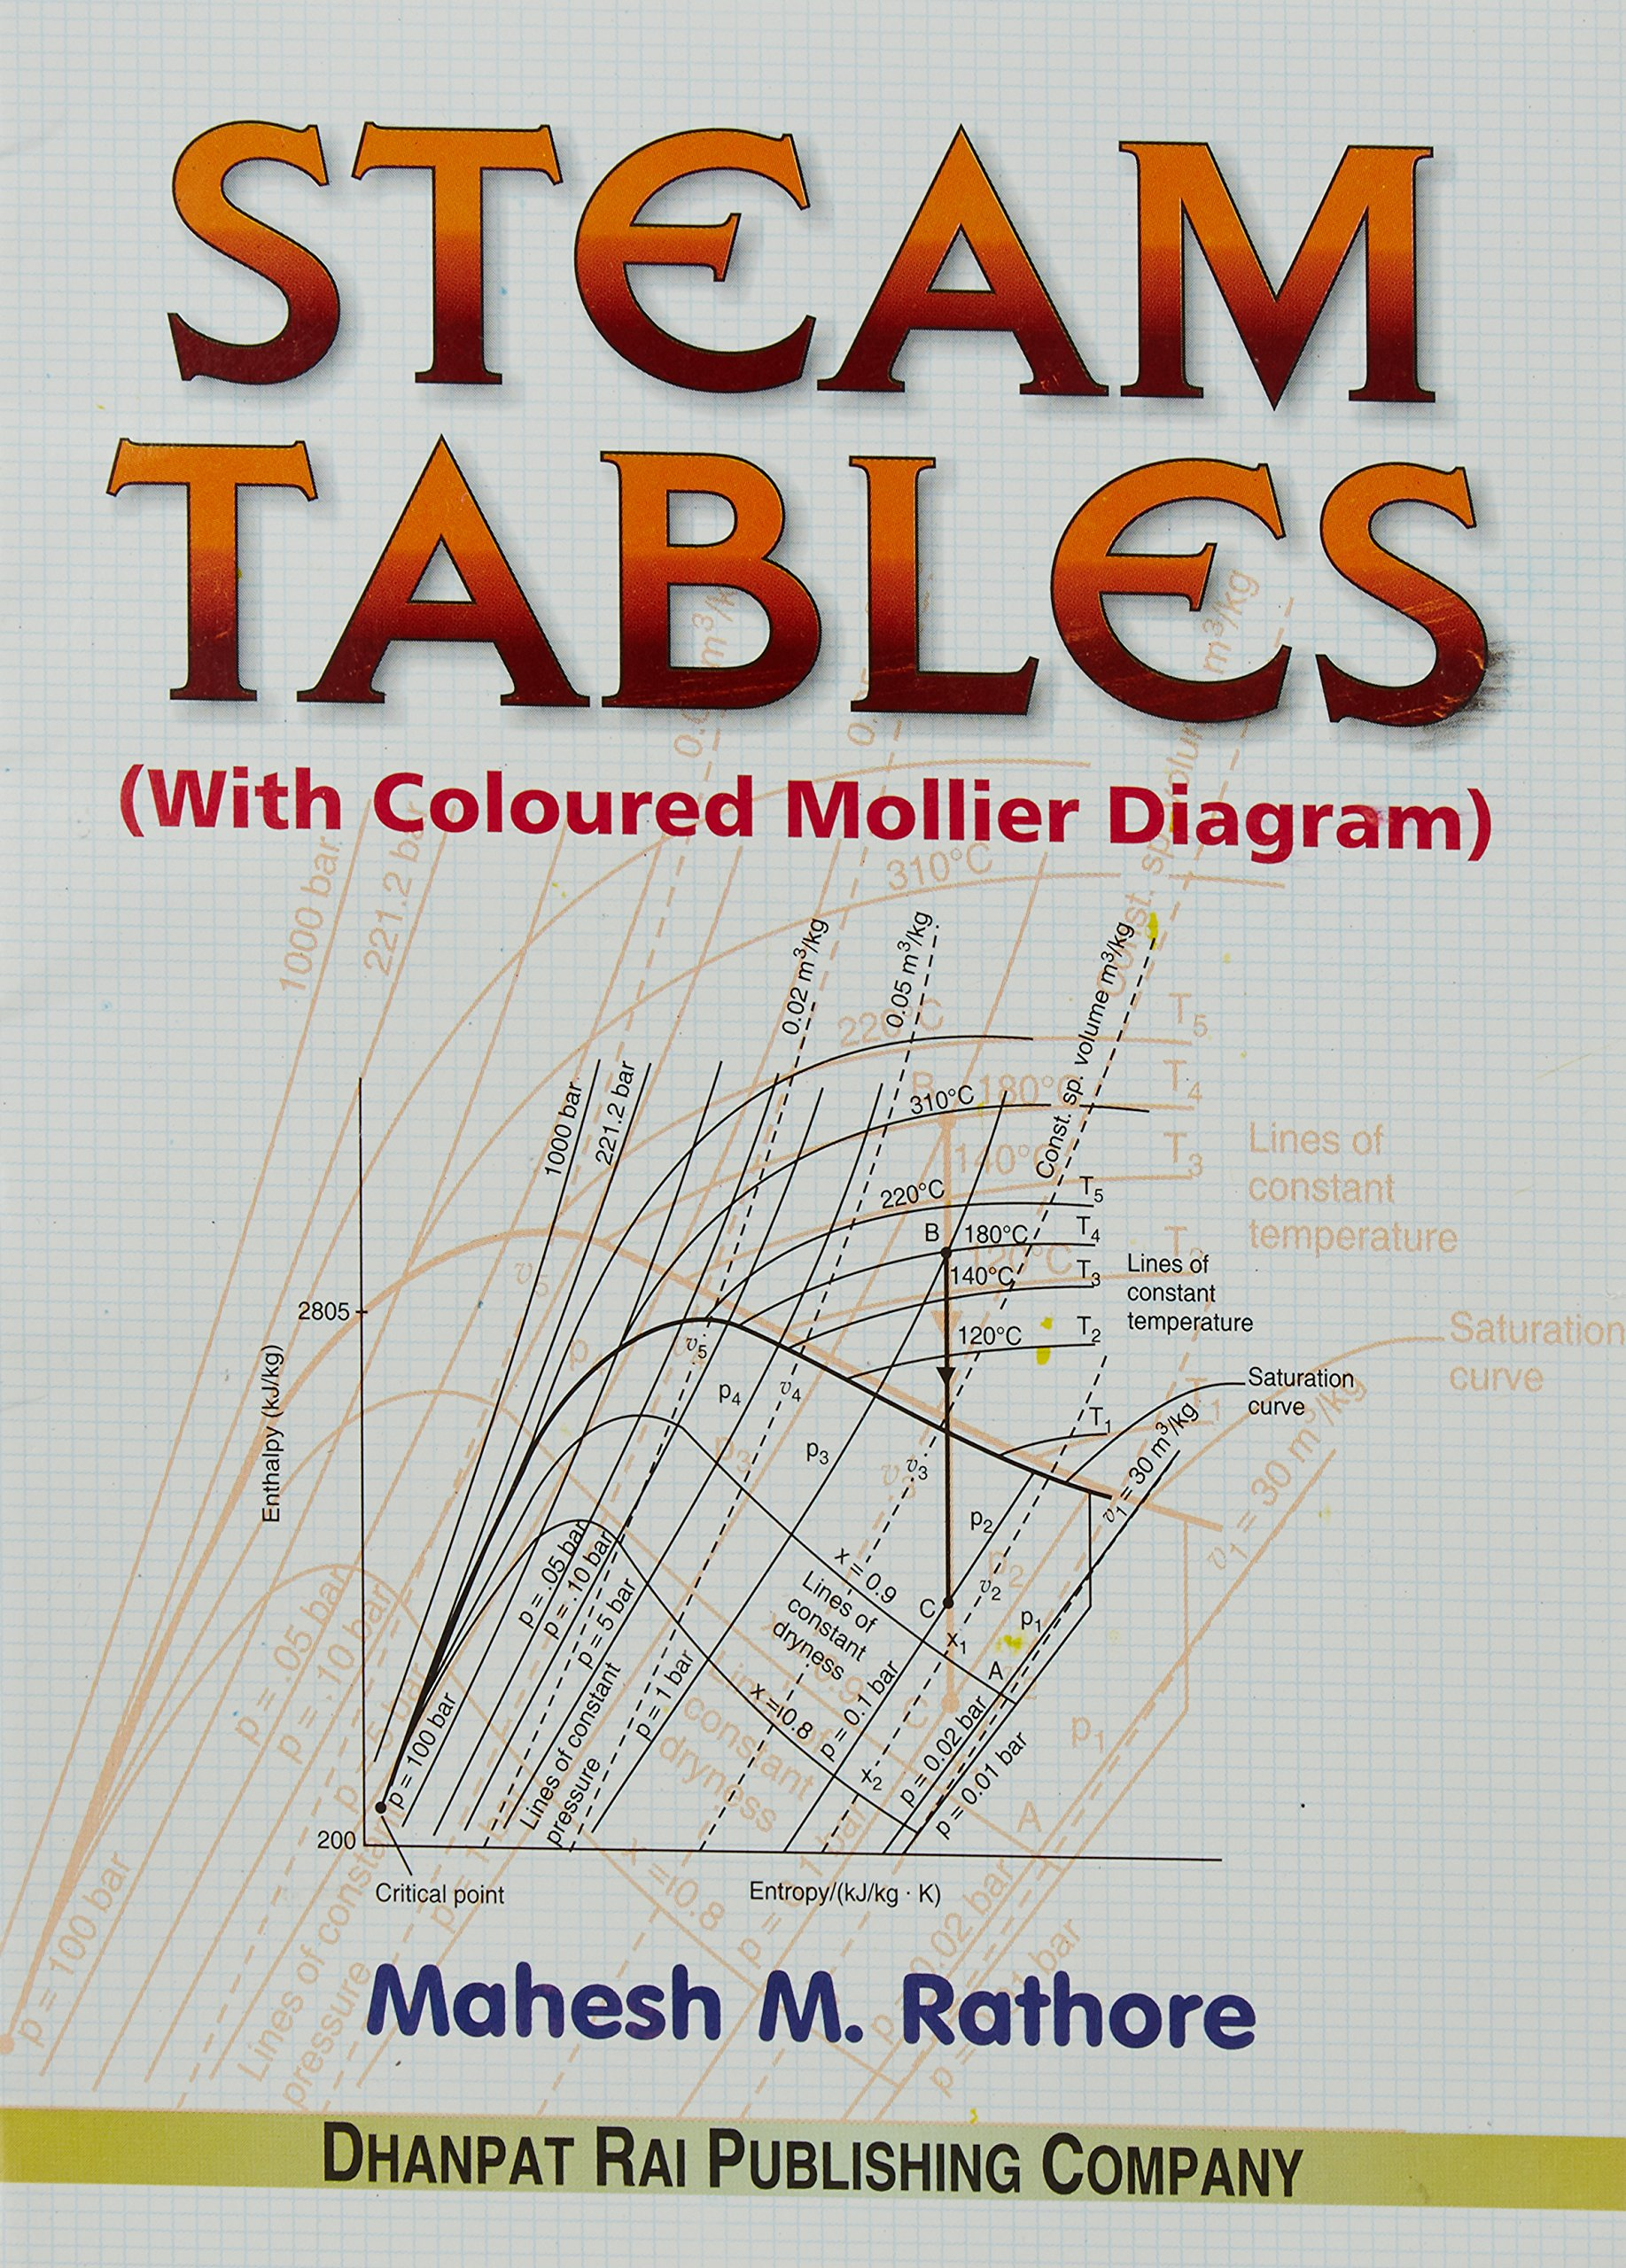 Amazon buy steam tables with coloured mollier diagram book amazon buy steam tables with coloured mollier diagram book online at low prices in india steam tables with coloured mollier diagram reviews pooptronica Image collections